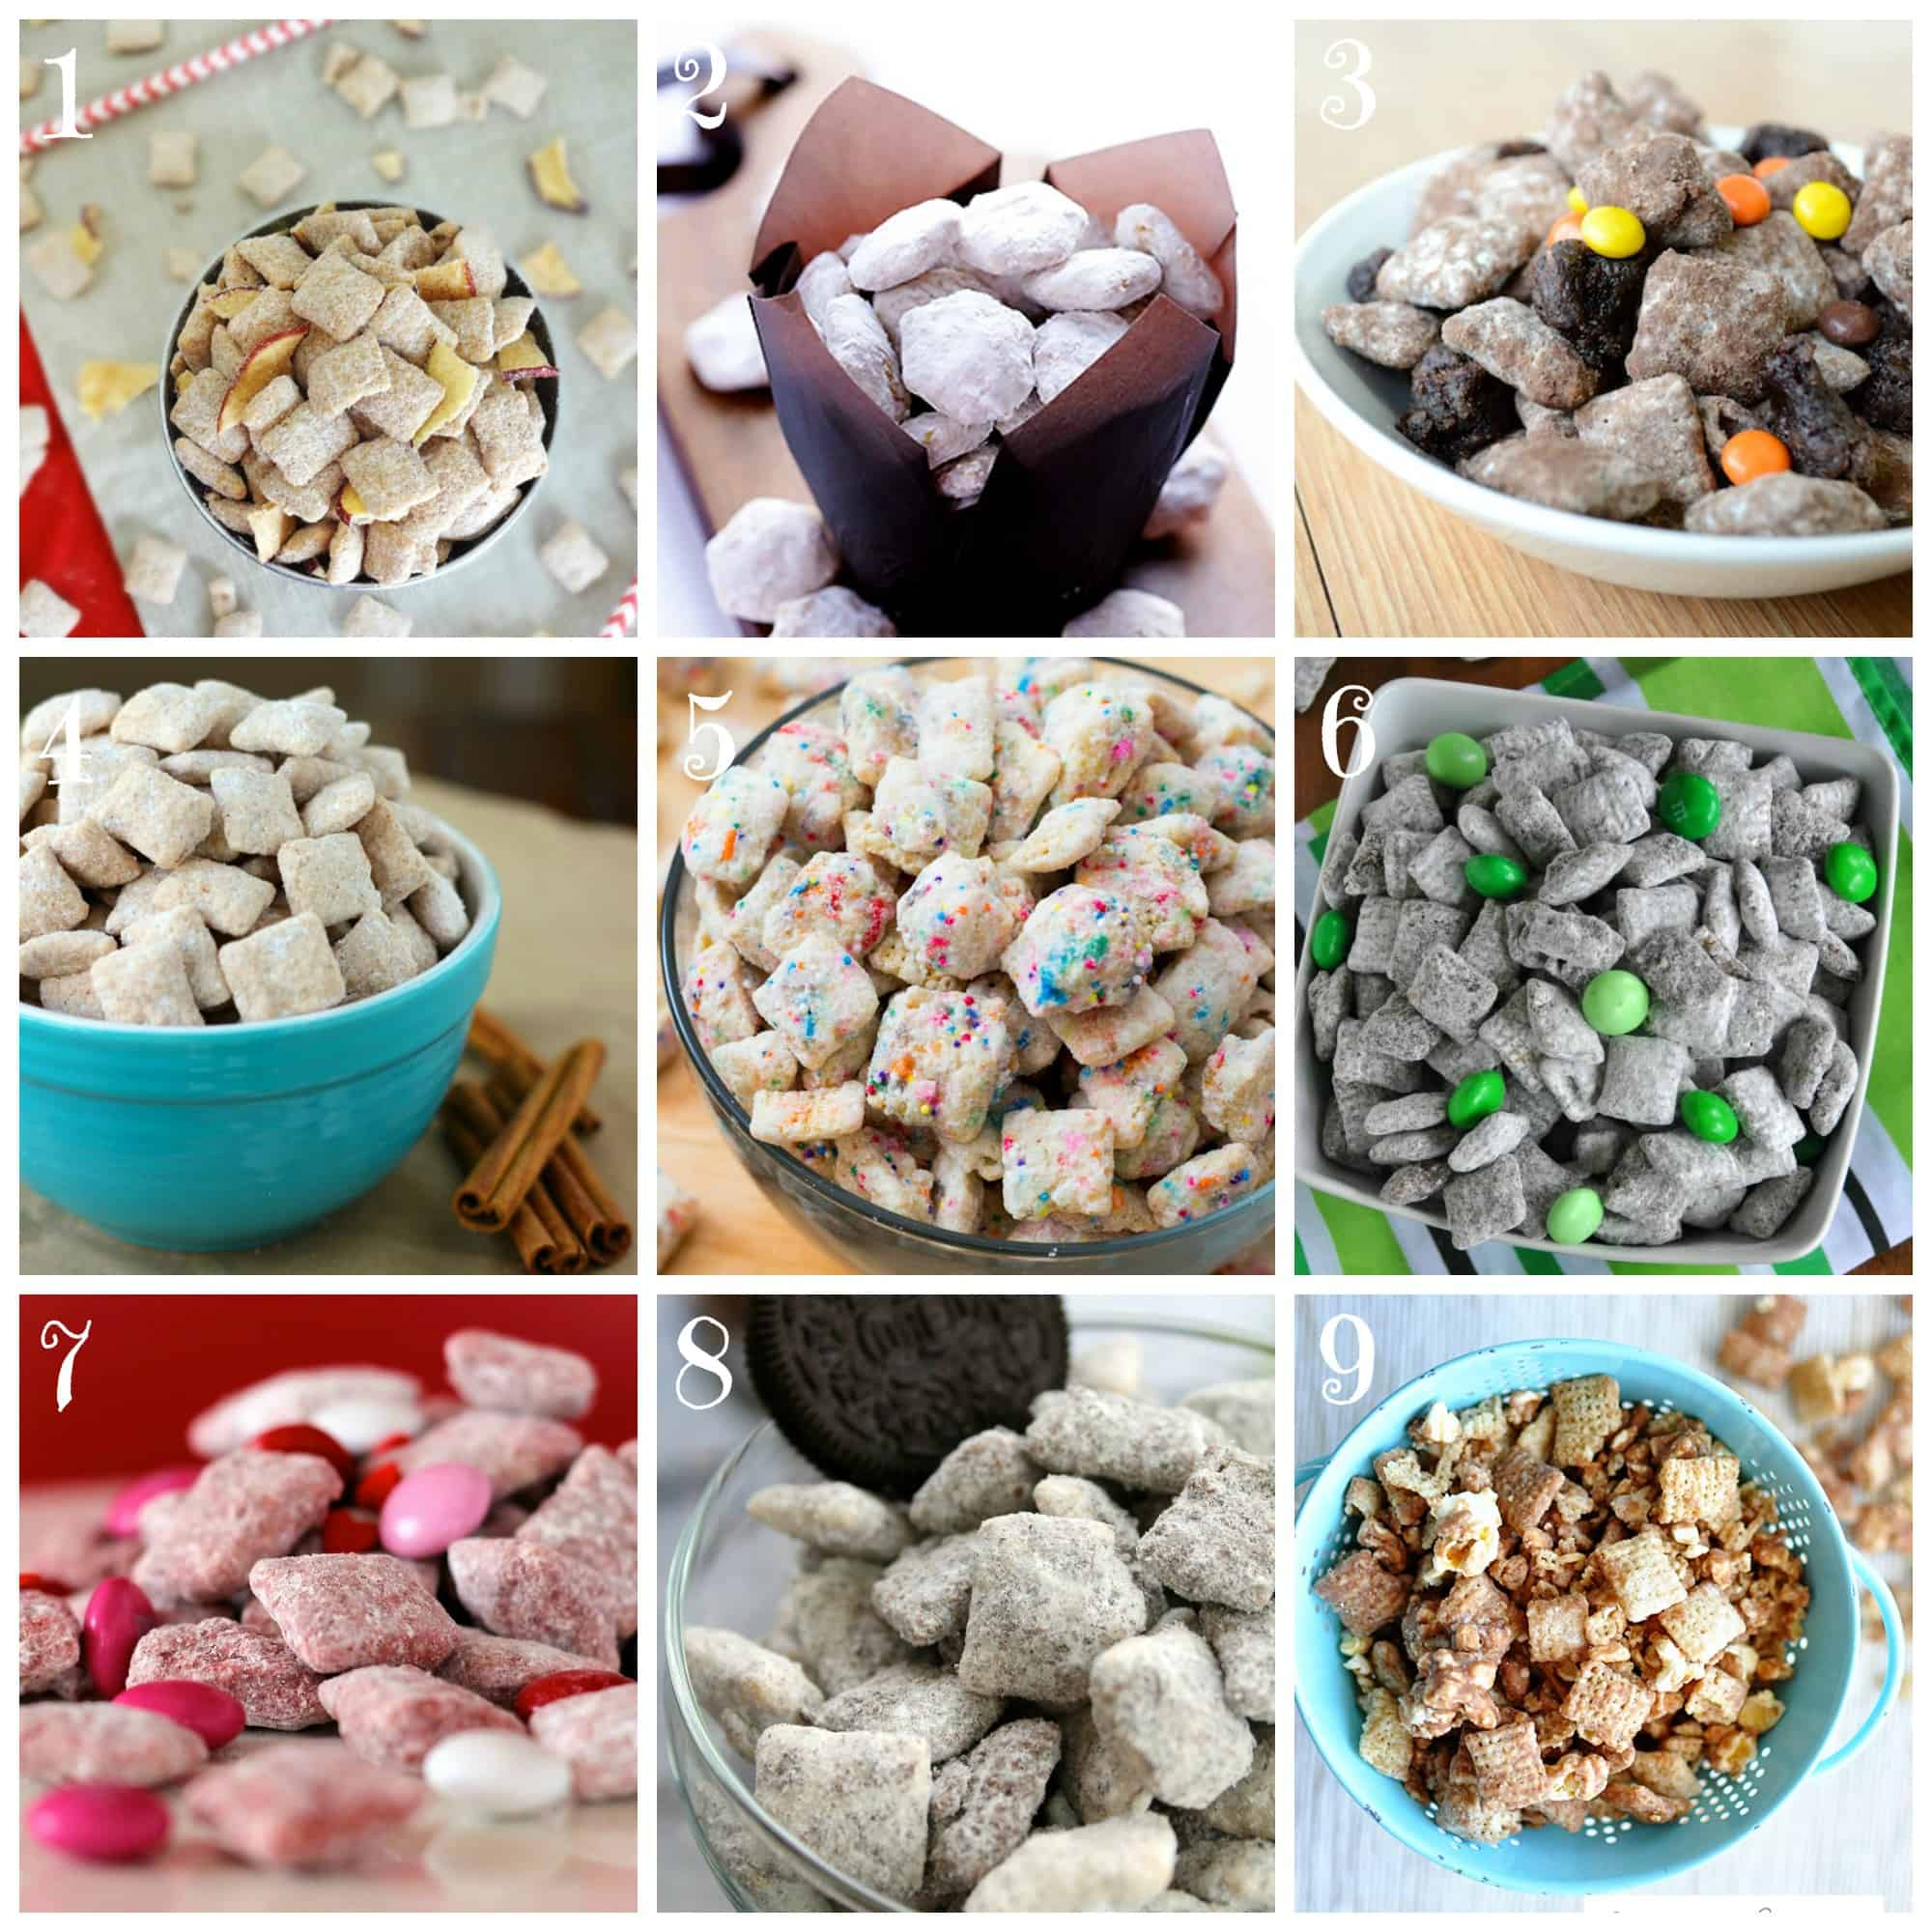 9 Variations of Making Puppy Chow Recipes